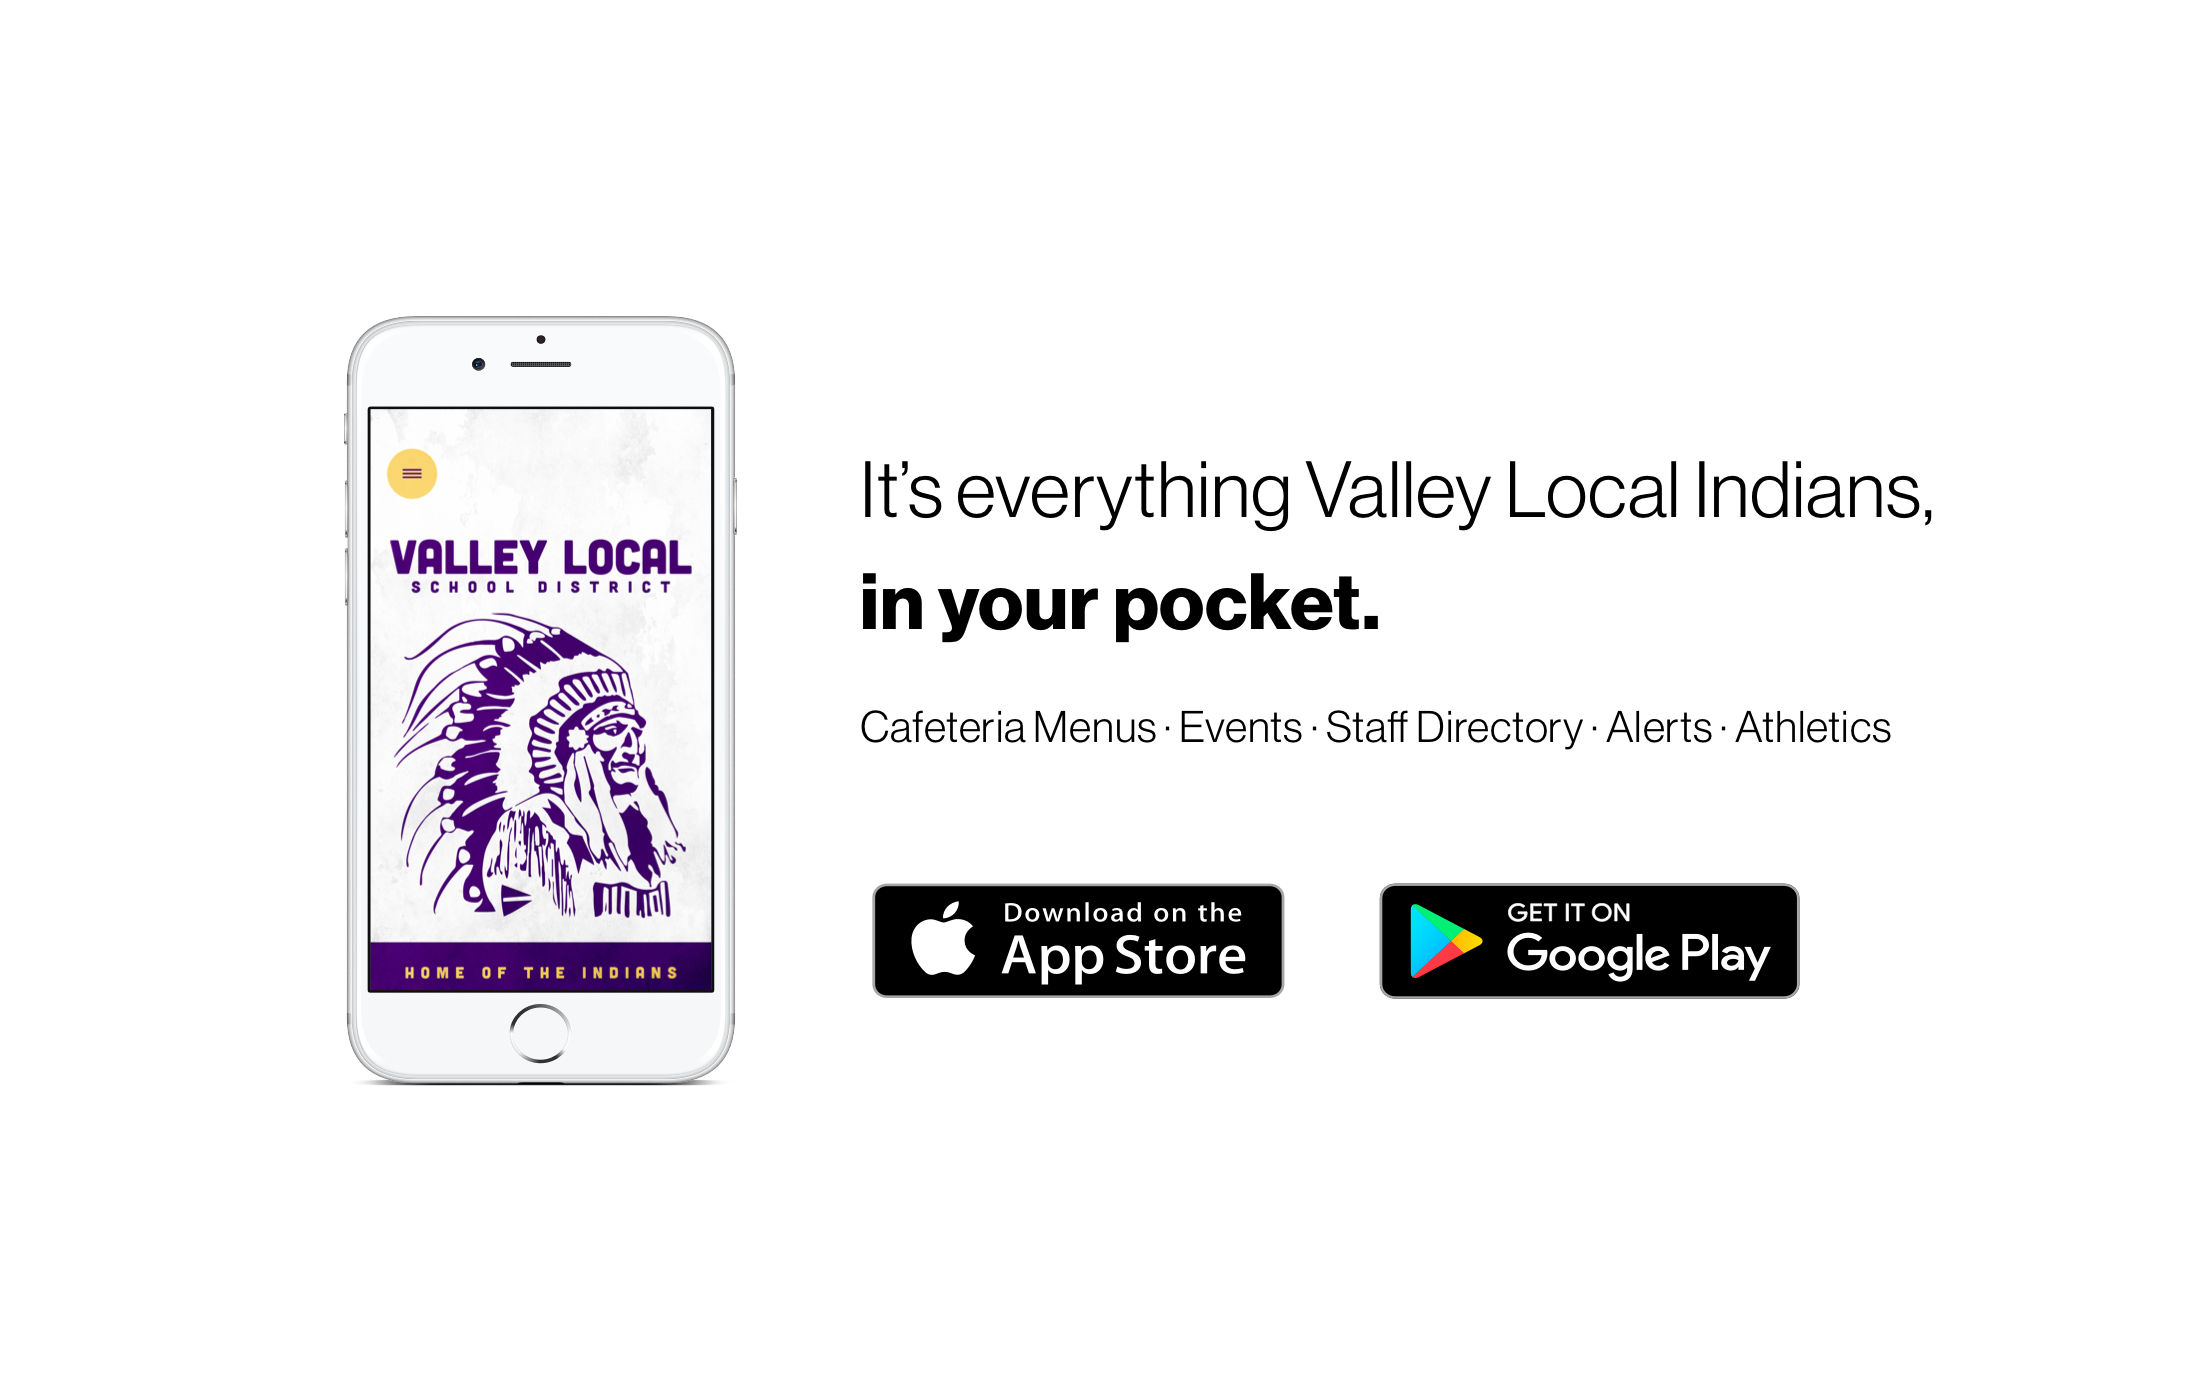 It's everything Valley Local Indians, in your pocket!